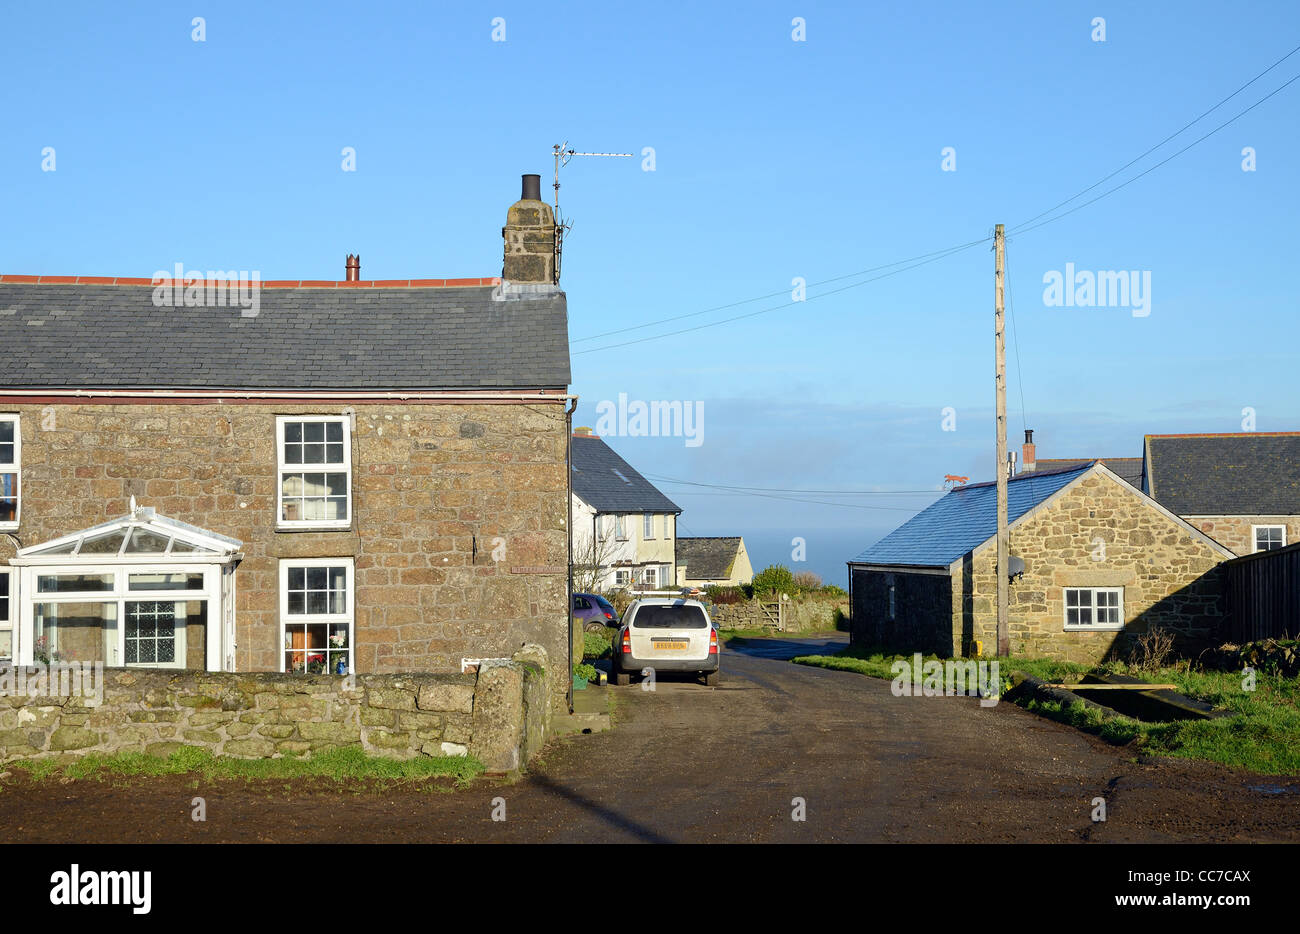 Cottages in the hamlet at gurnards head in cornwall, uk - Stock Image